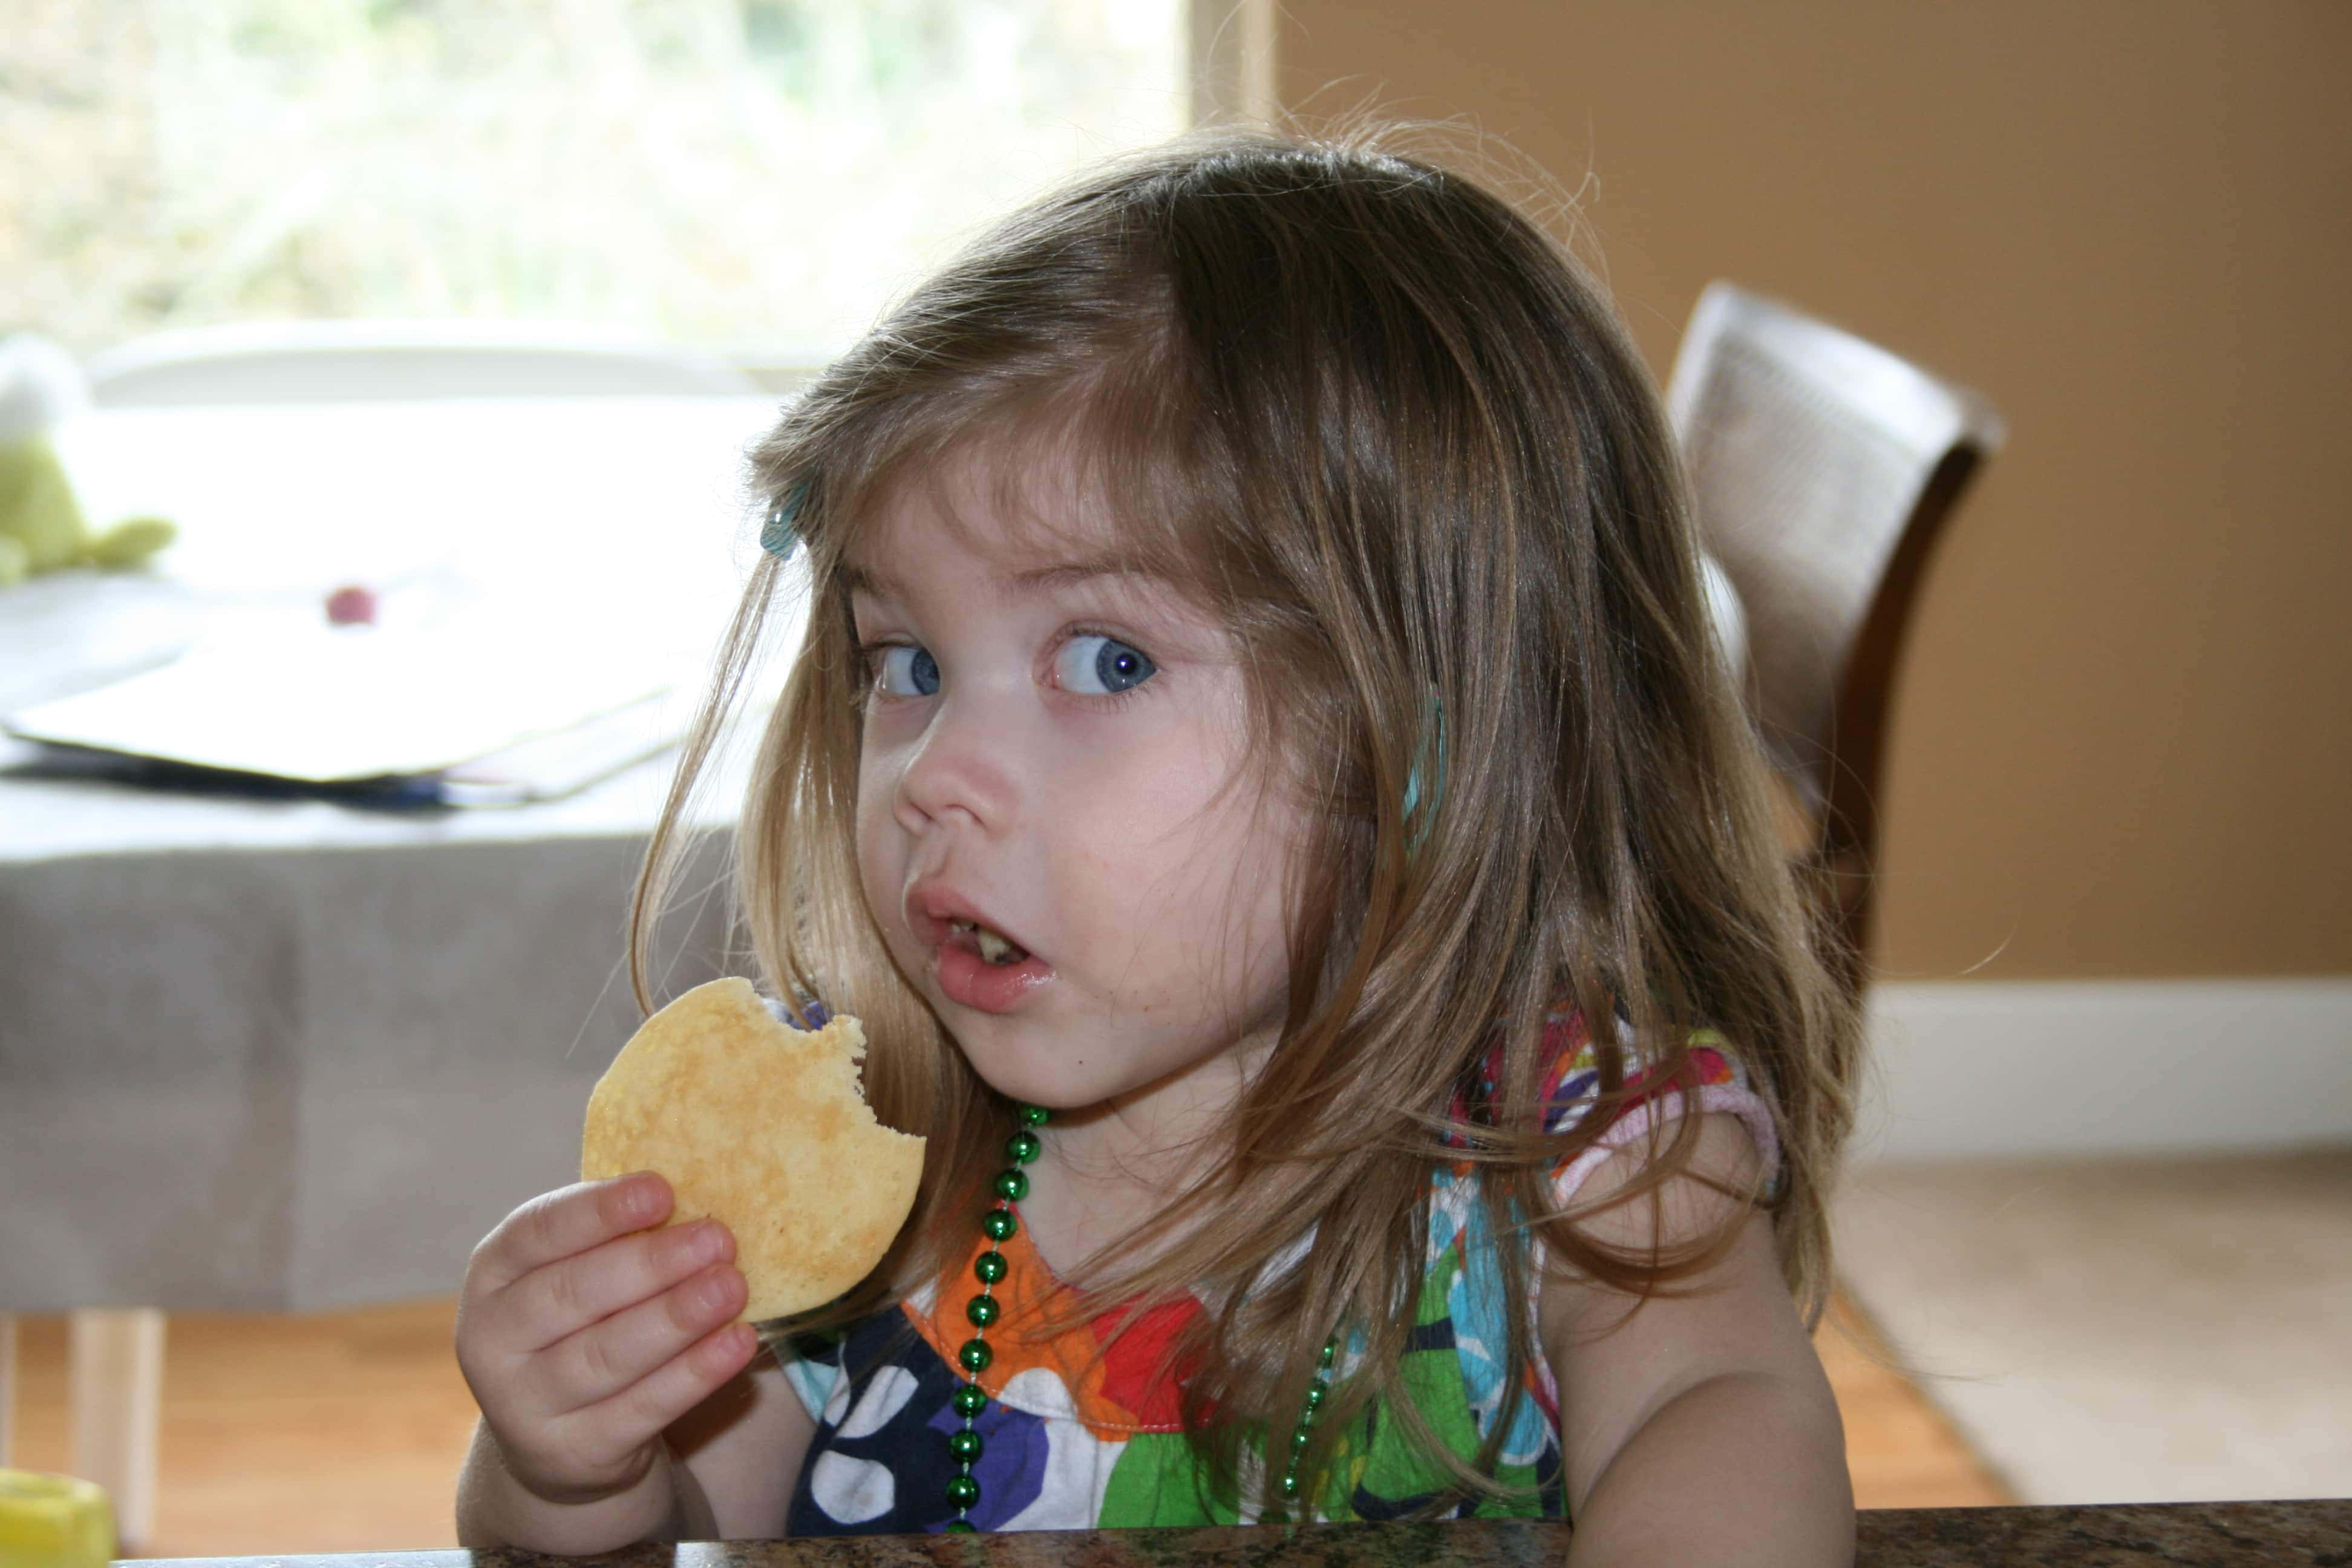 Brooke eating a cookie